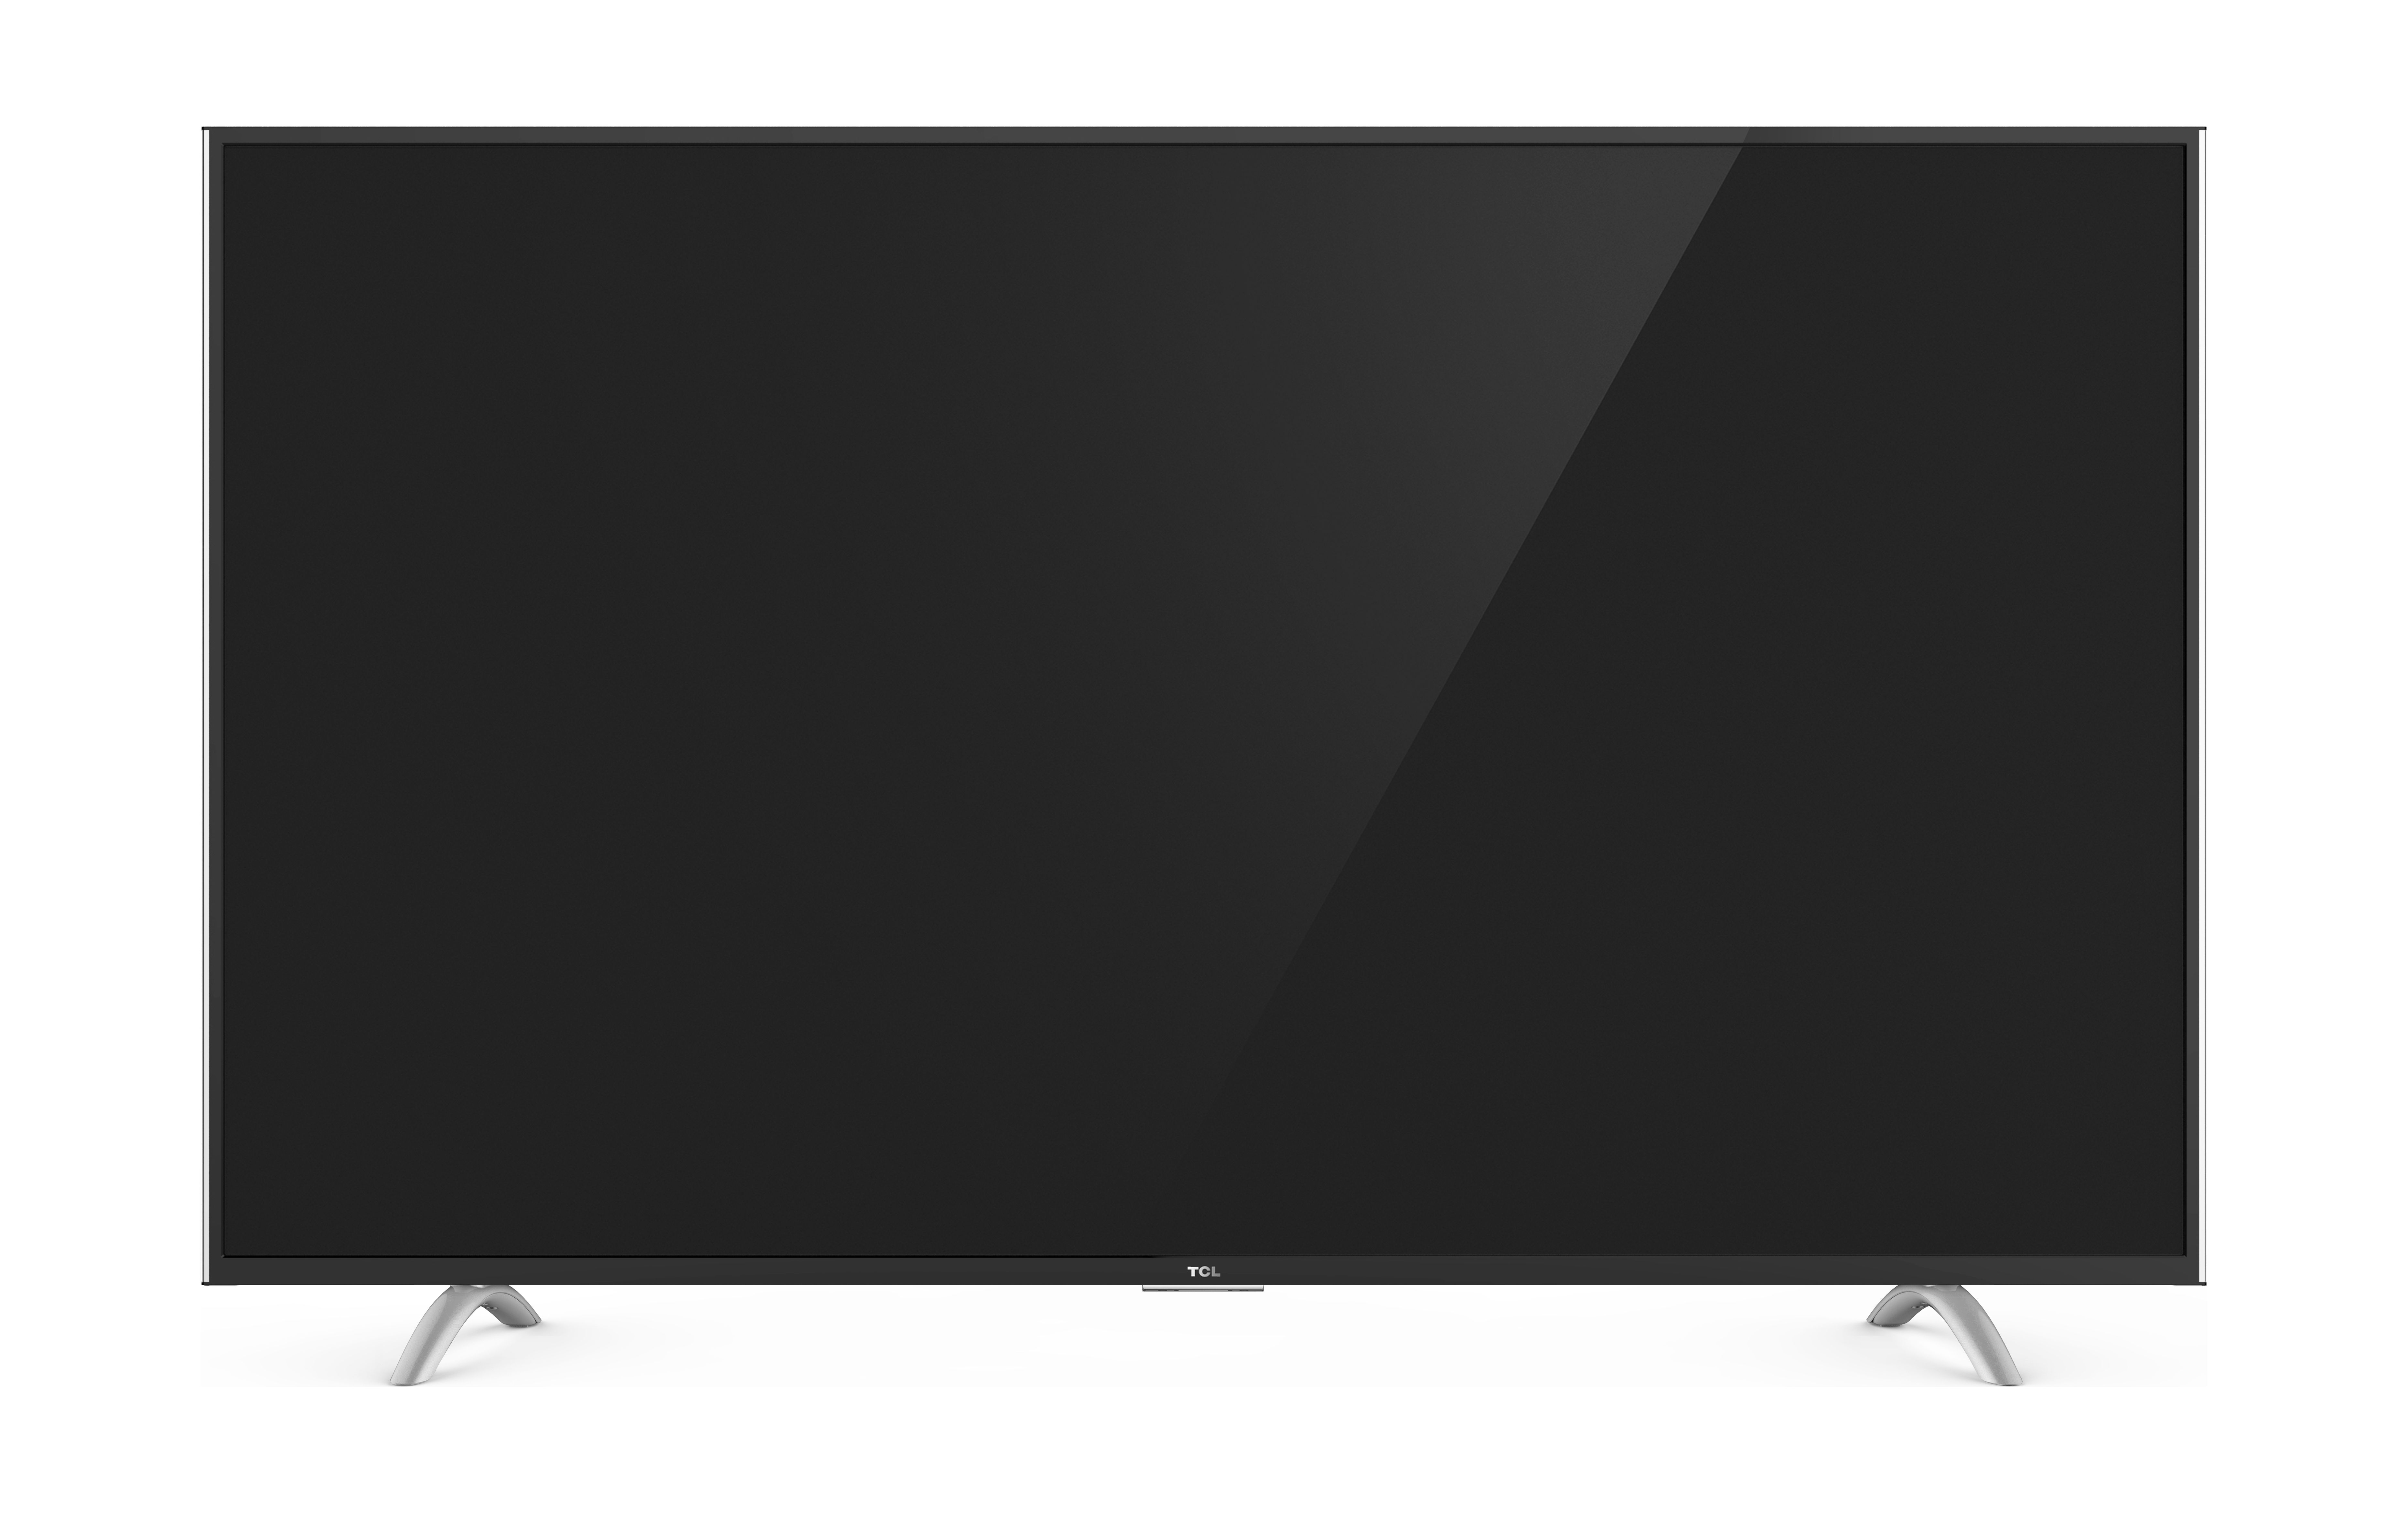 Buy Tcl 55 Inch Tv 4k Ultra Hd Uhd Led At Best Price In